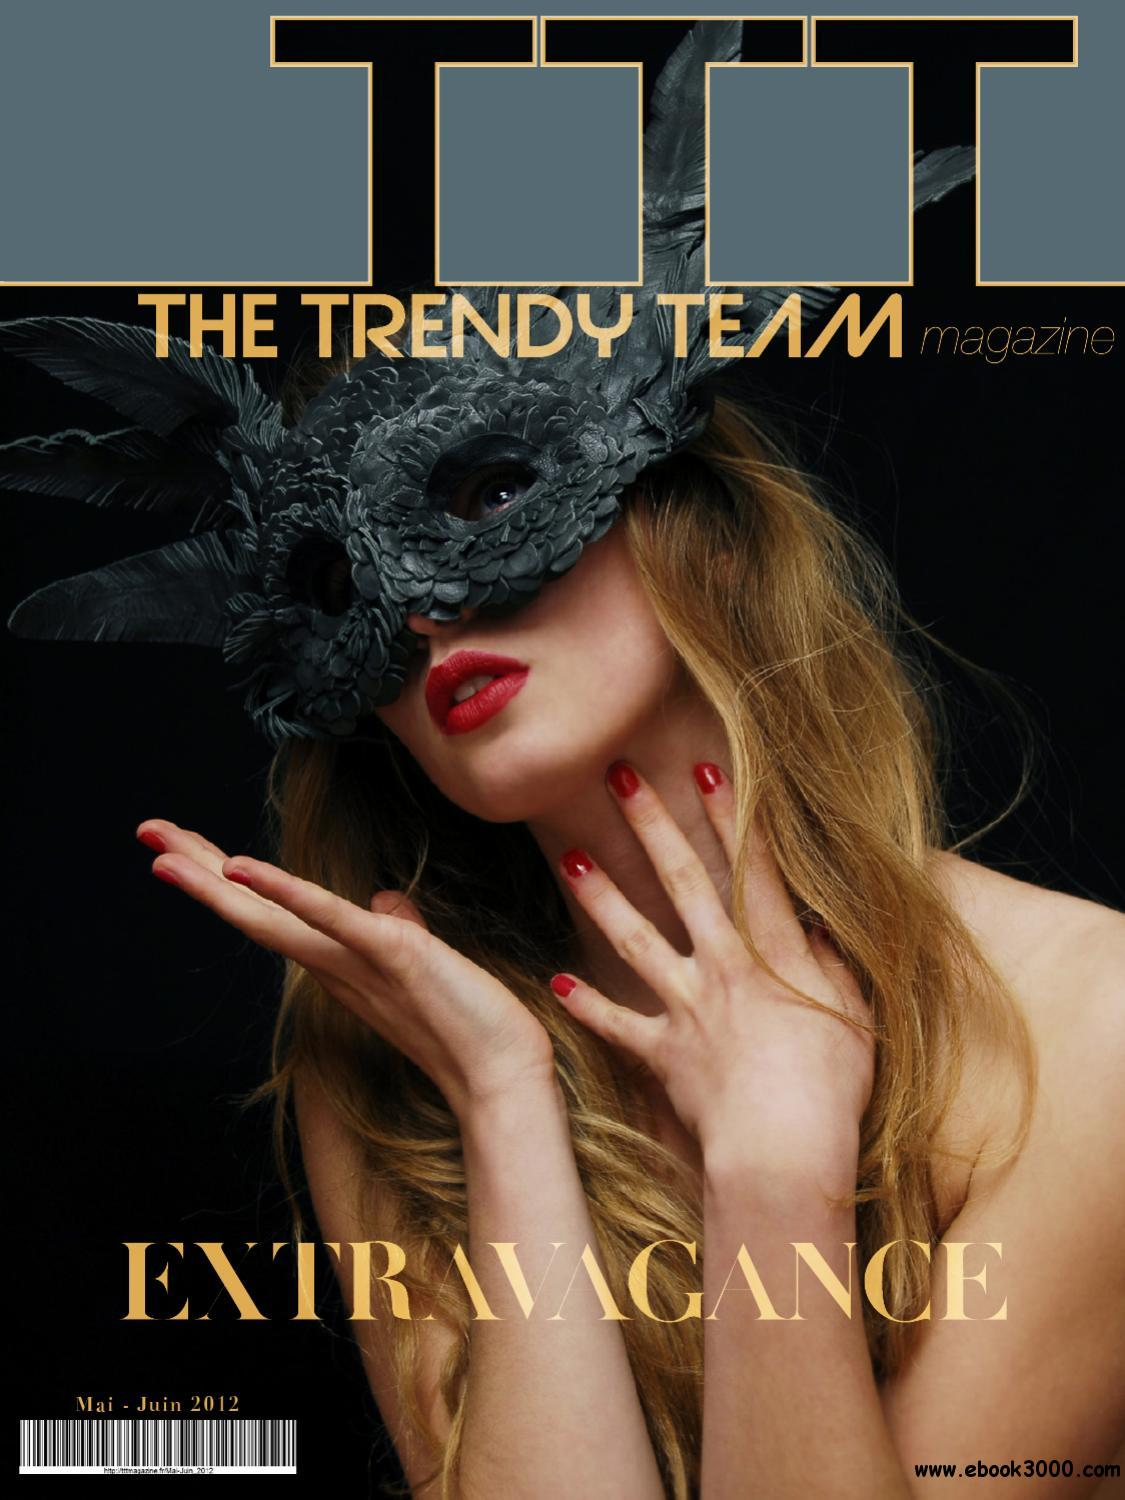 The Trendy Team - May / June 2012 free download